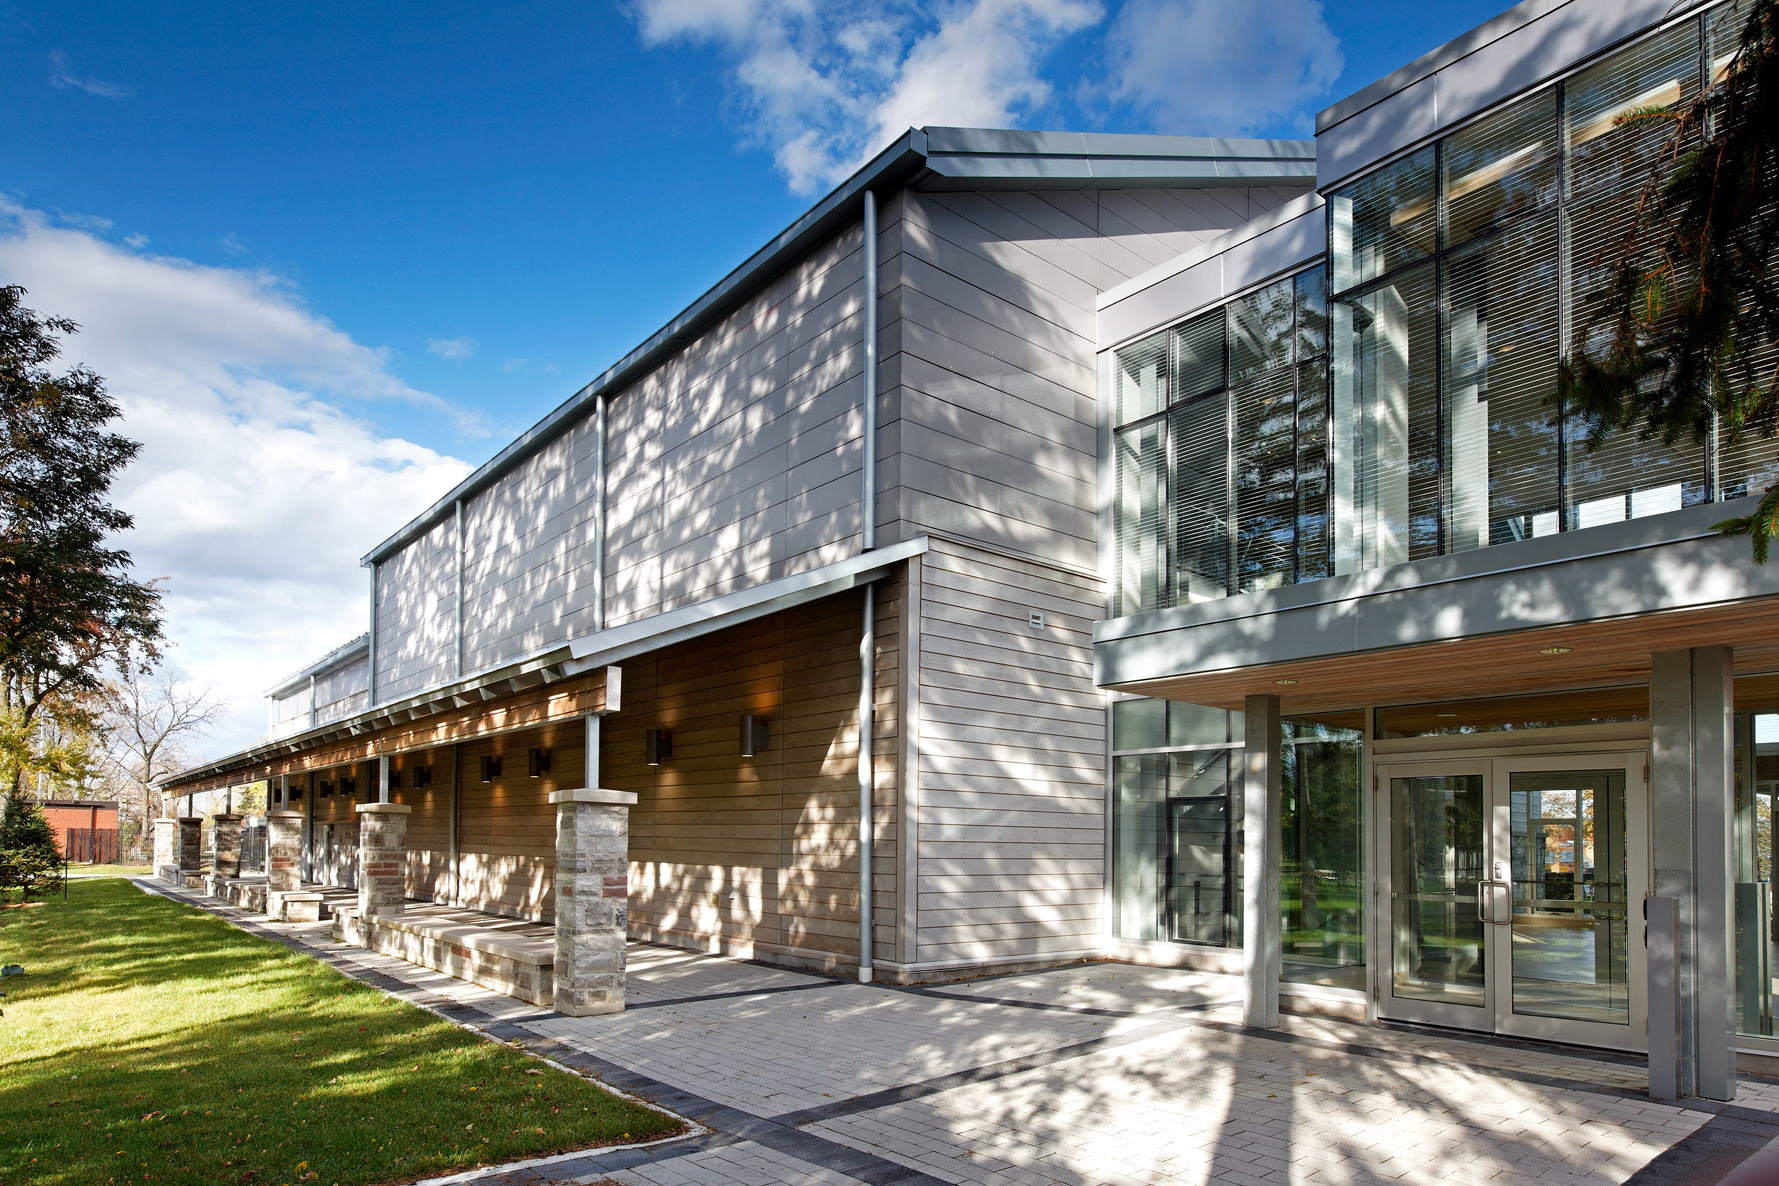 Glazed front entrance with wood and steel cantilever roof and lit colonnade running length of building with trees on a sunny day